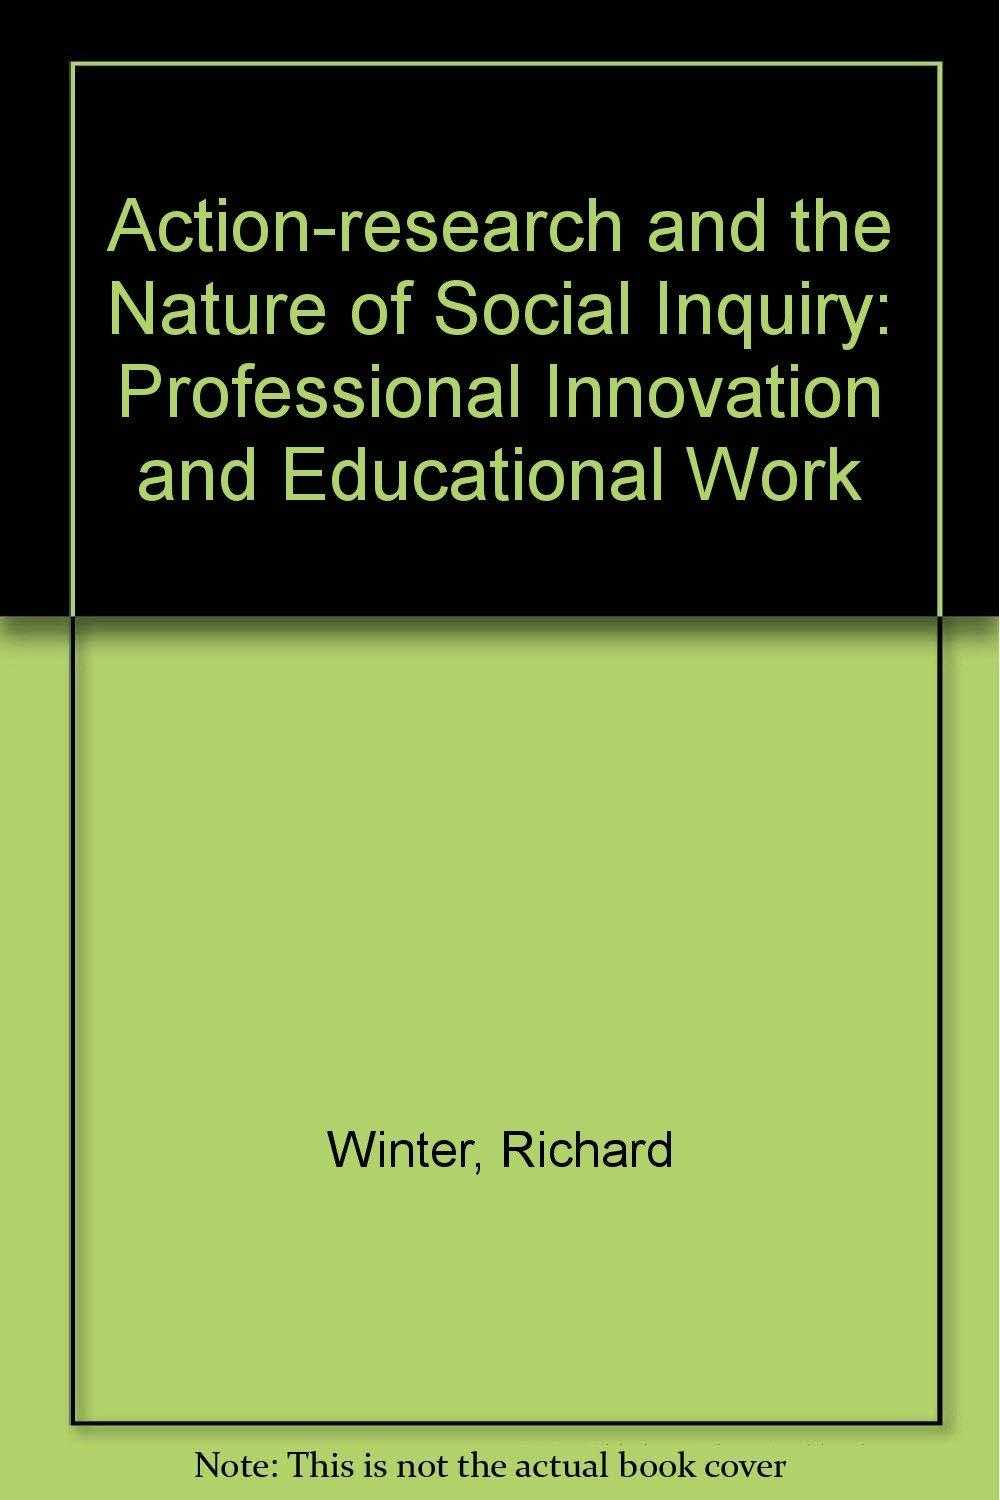 Action-research and the Nature of Social Inquiry: Professional Innovation and., Winter, Richard